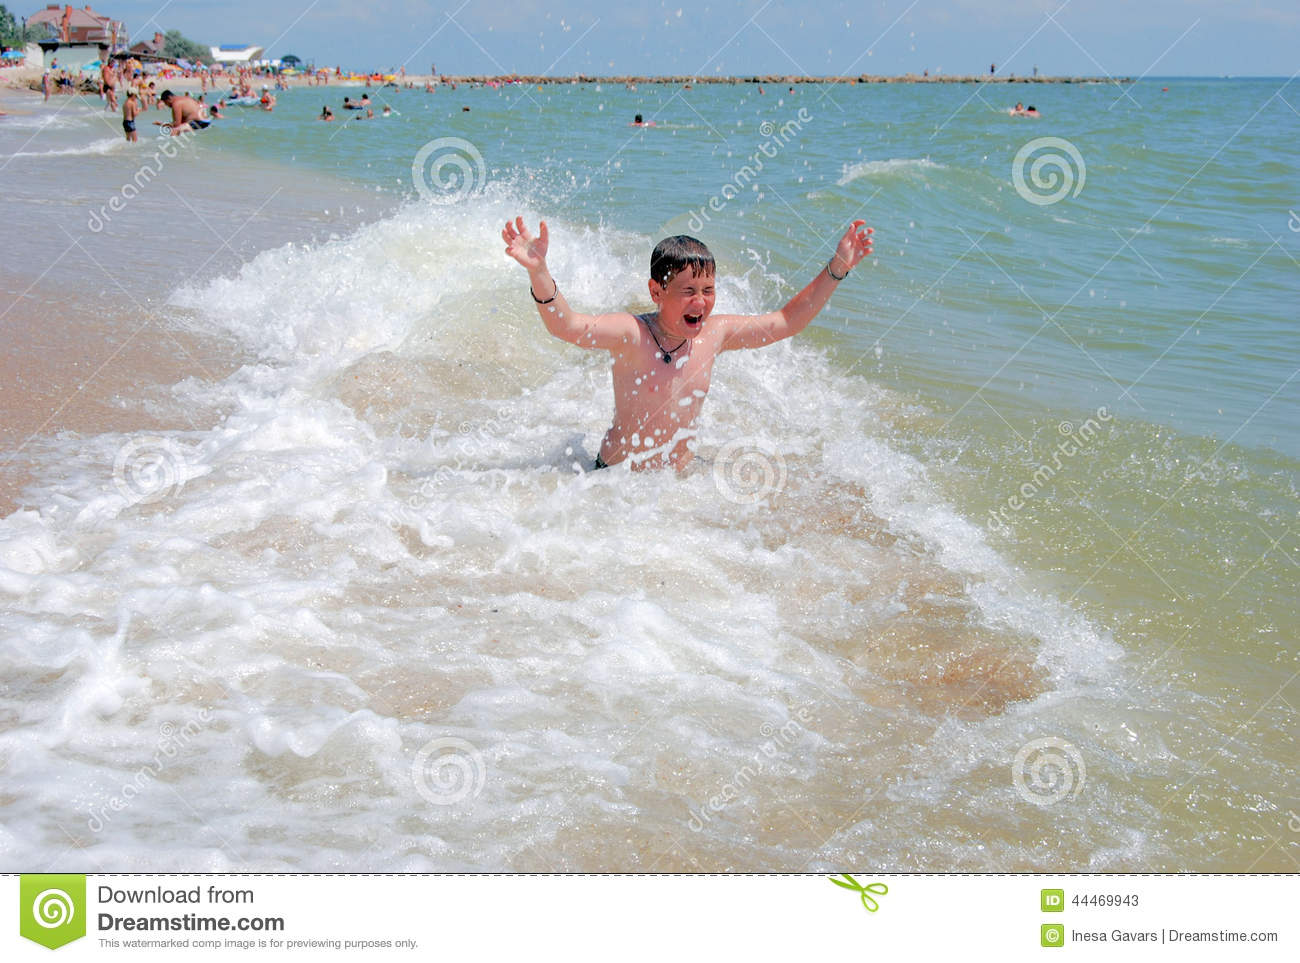 azov boy The Boy Swims In The Sea Stock Photo